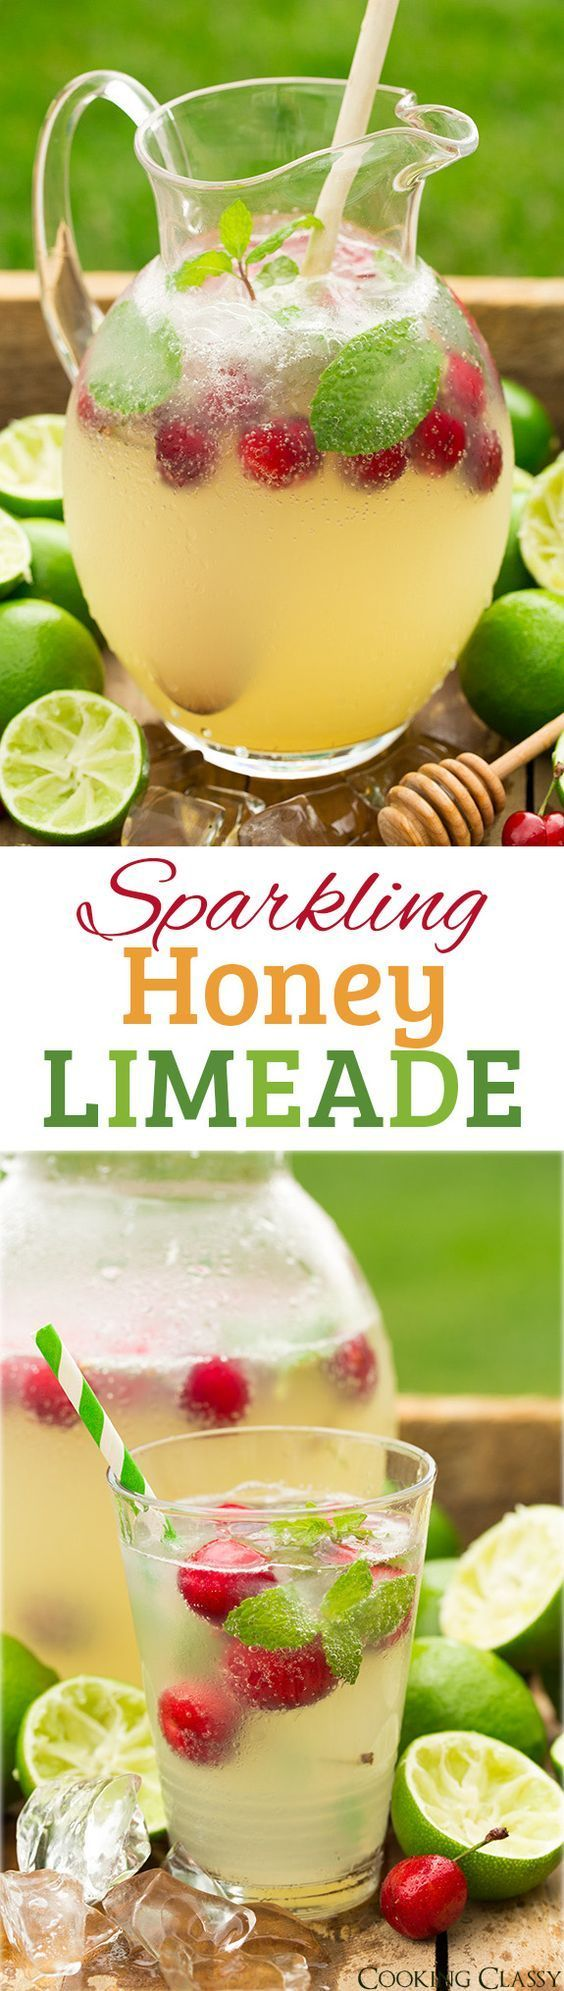 Sparkling Honey Limeade - I love this flavor combo! Such a refreshing drink!!